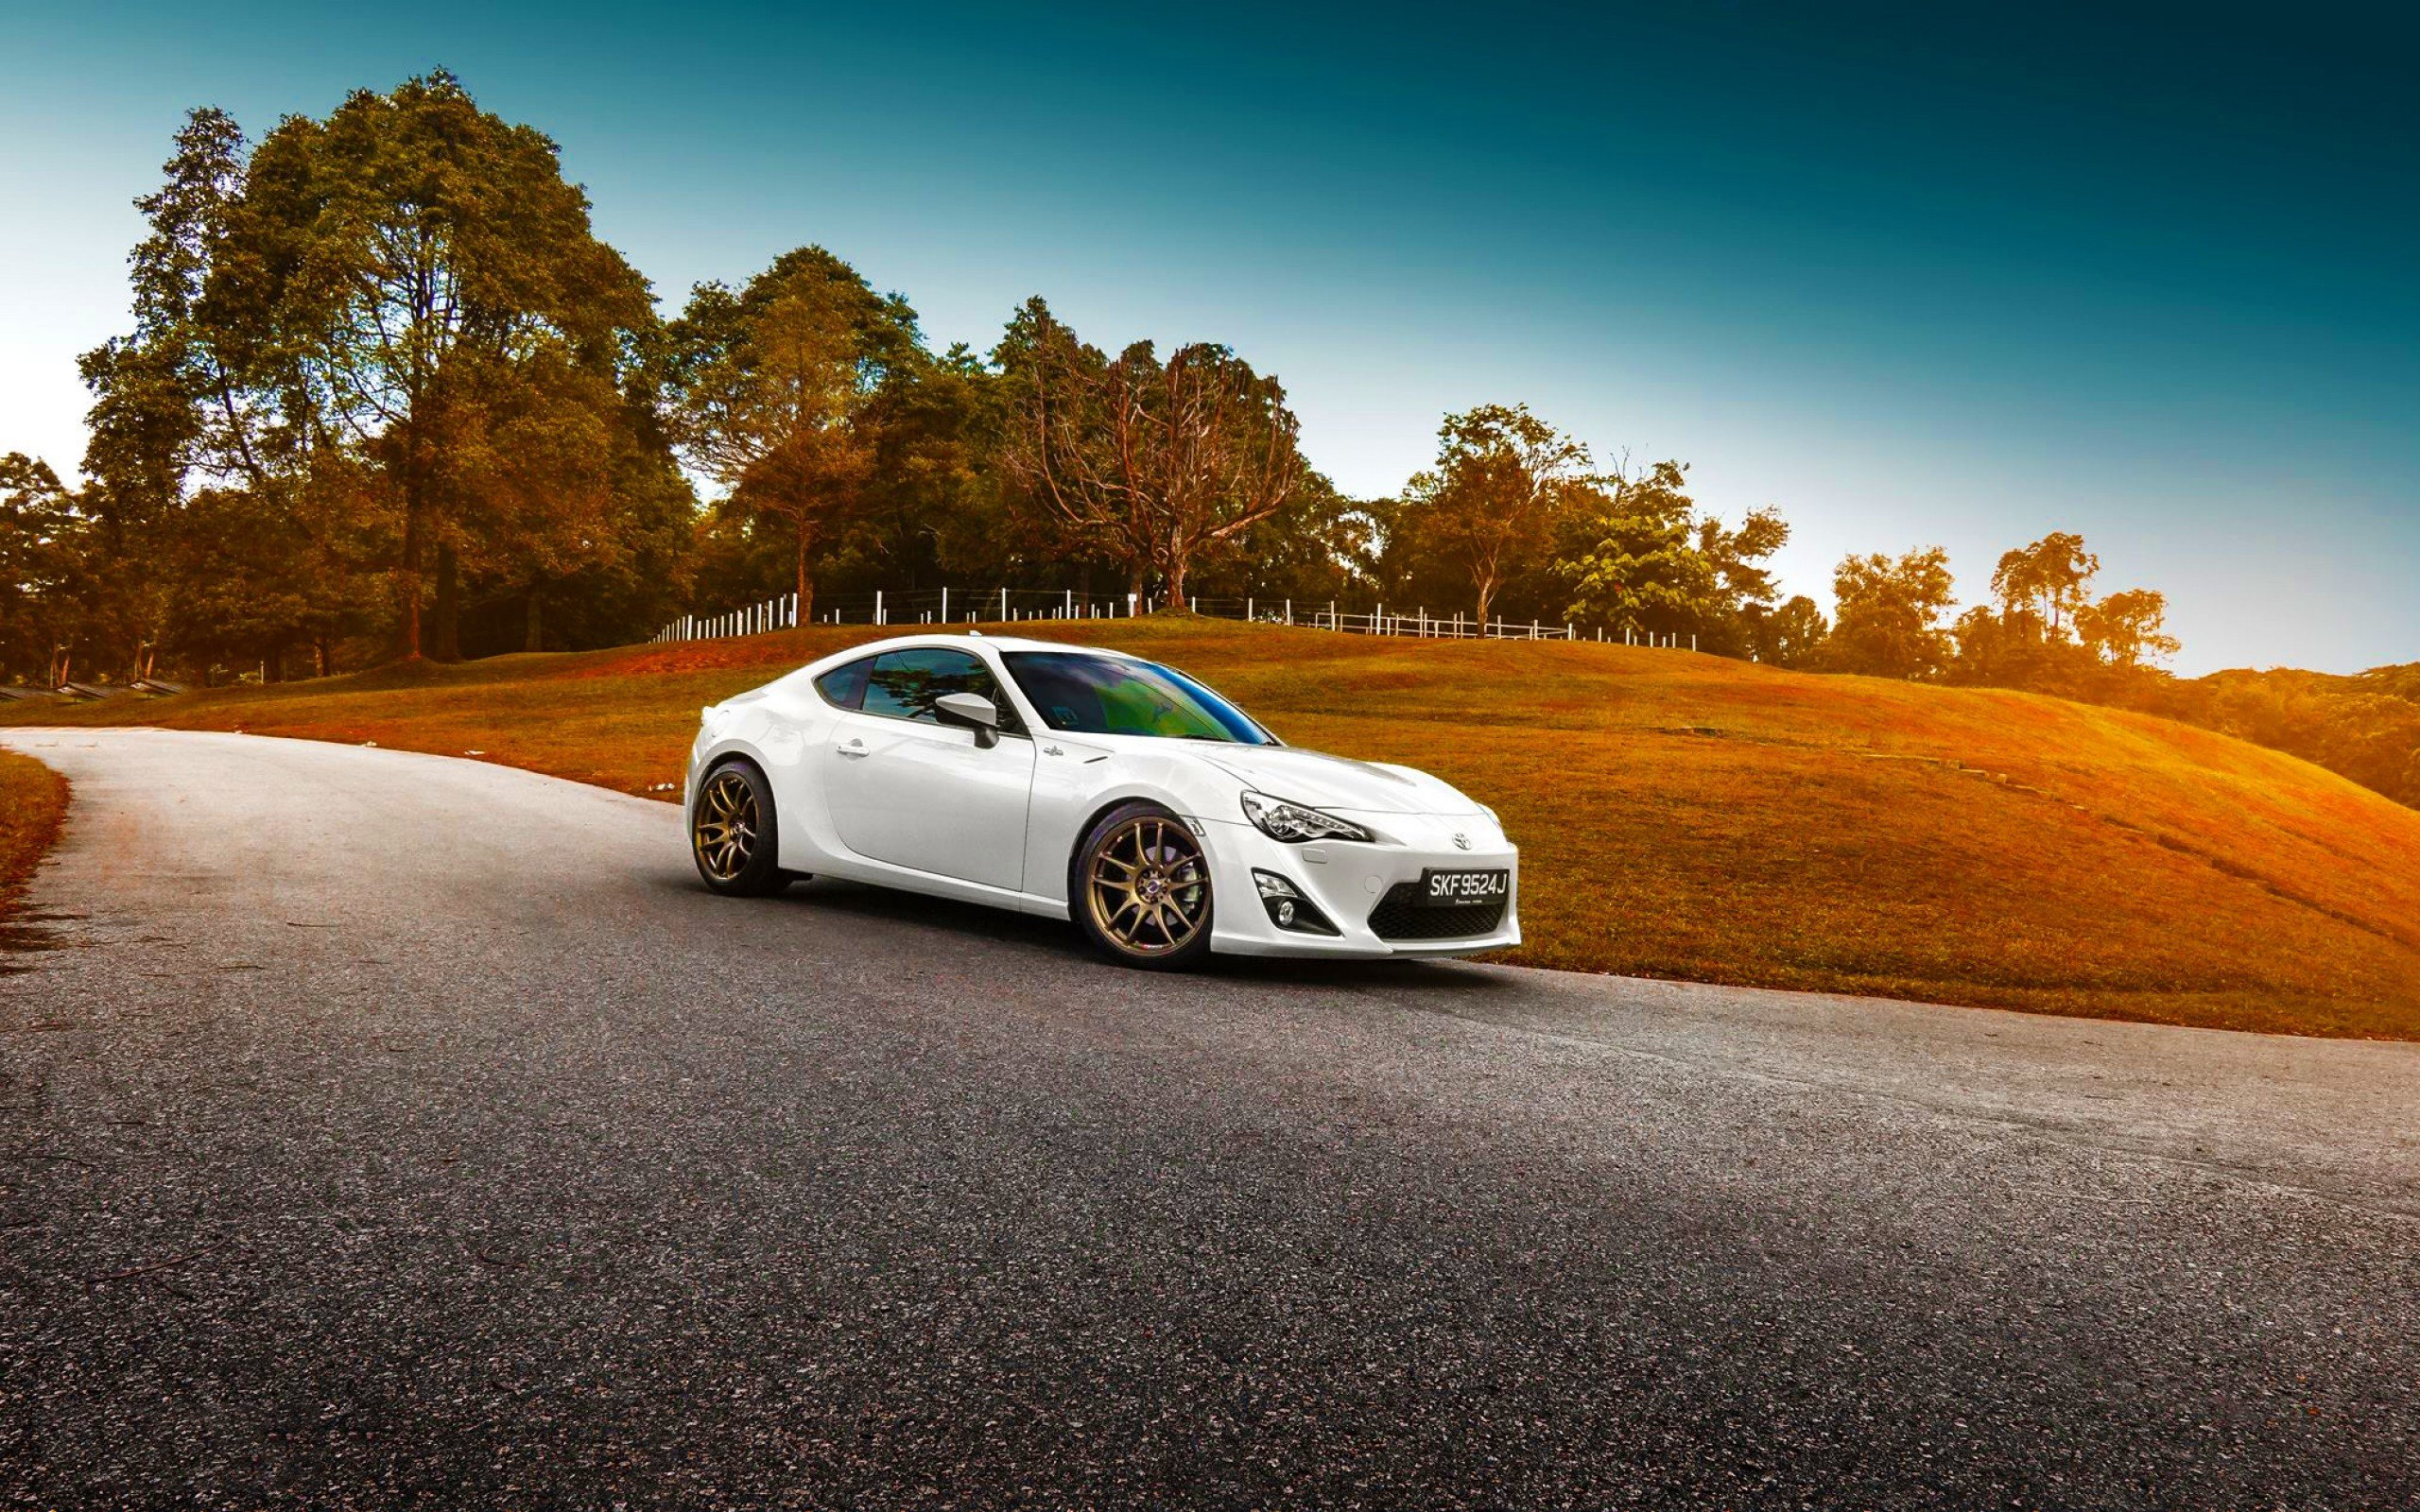 New Hd Background Toyota Gt 86 White Color Grass Sunset Car On This Month